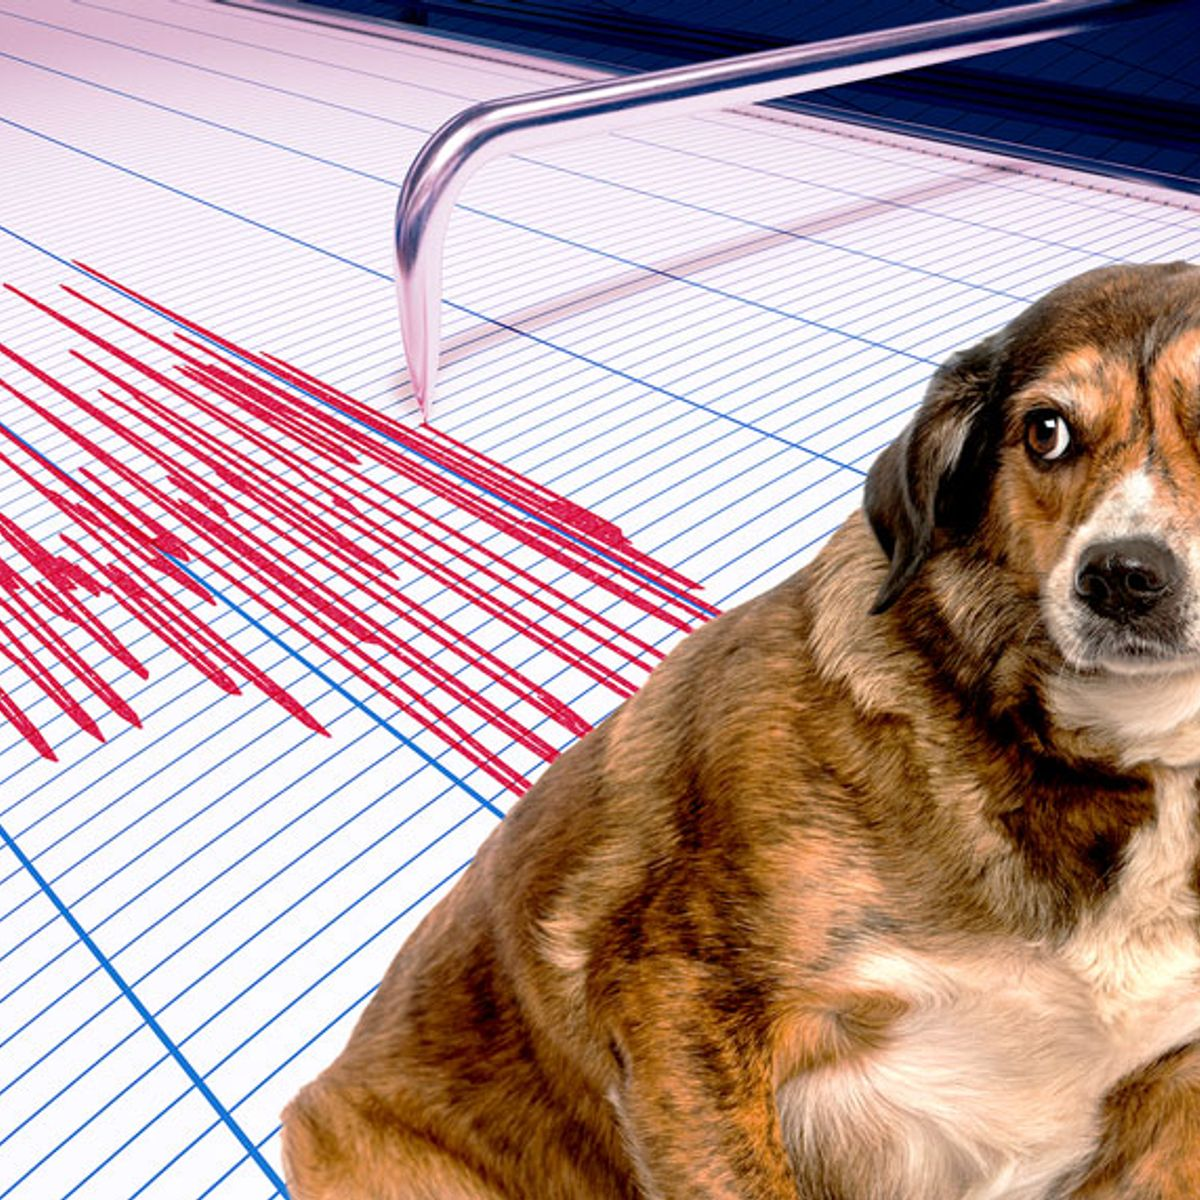 Can dogs predict when earthquakes will happen?